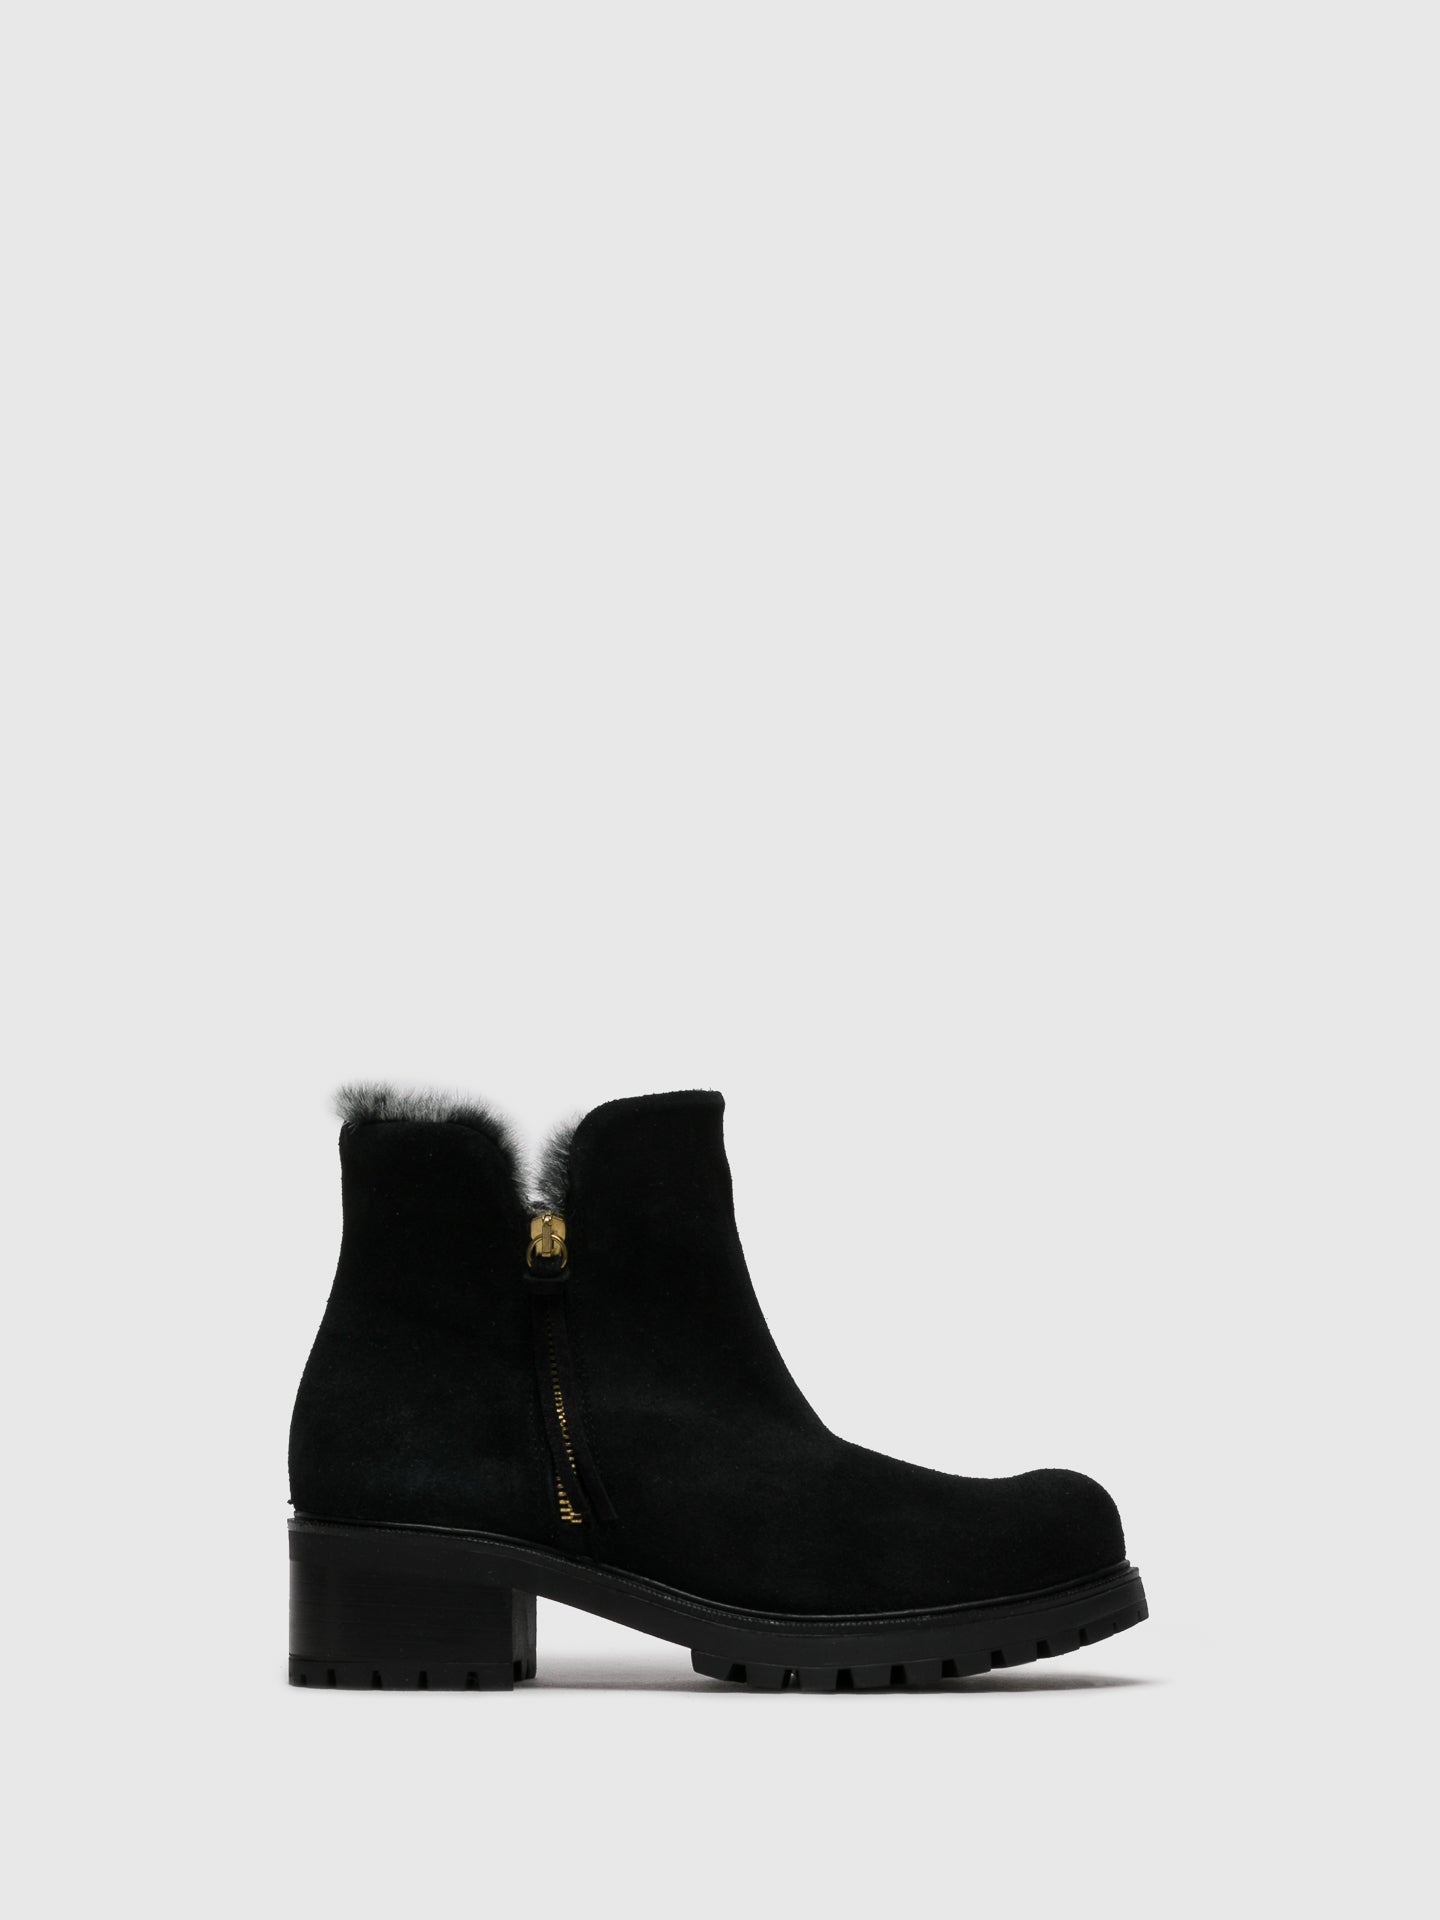 Sotoalto Matte Black Zip Up Ankle Boots